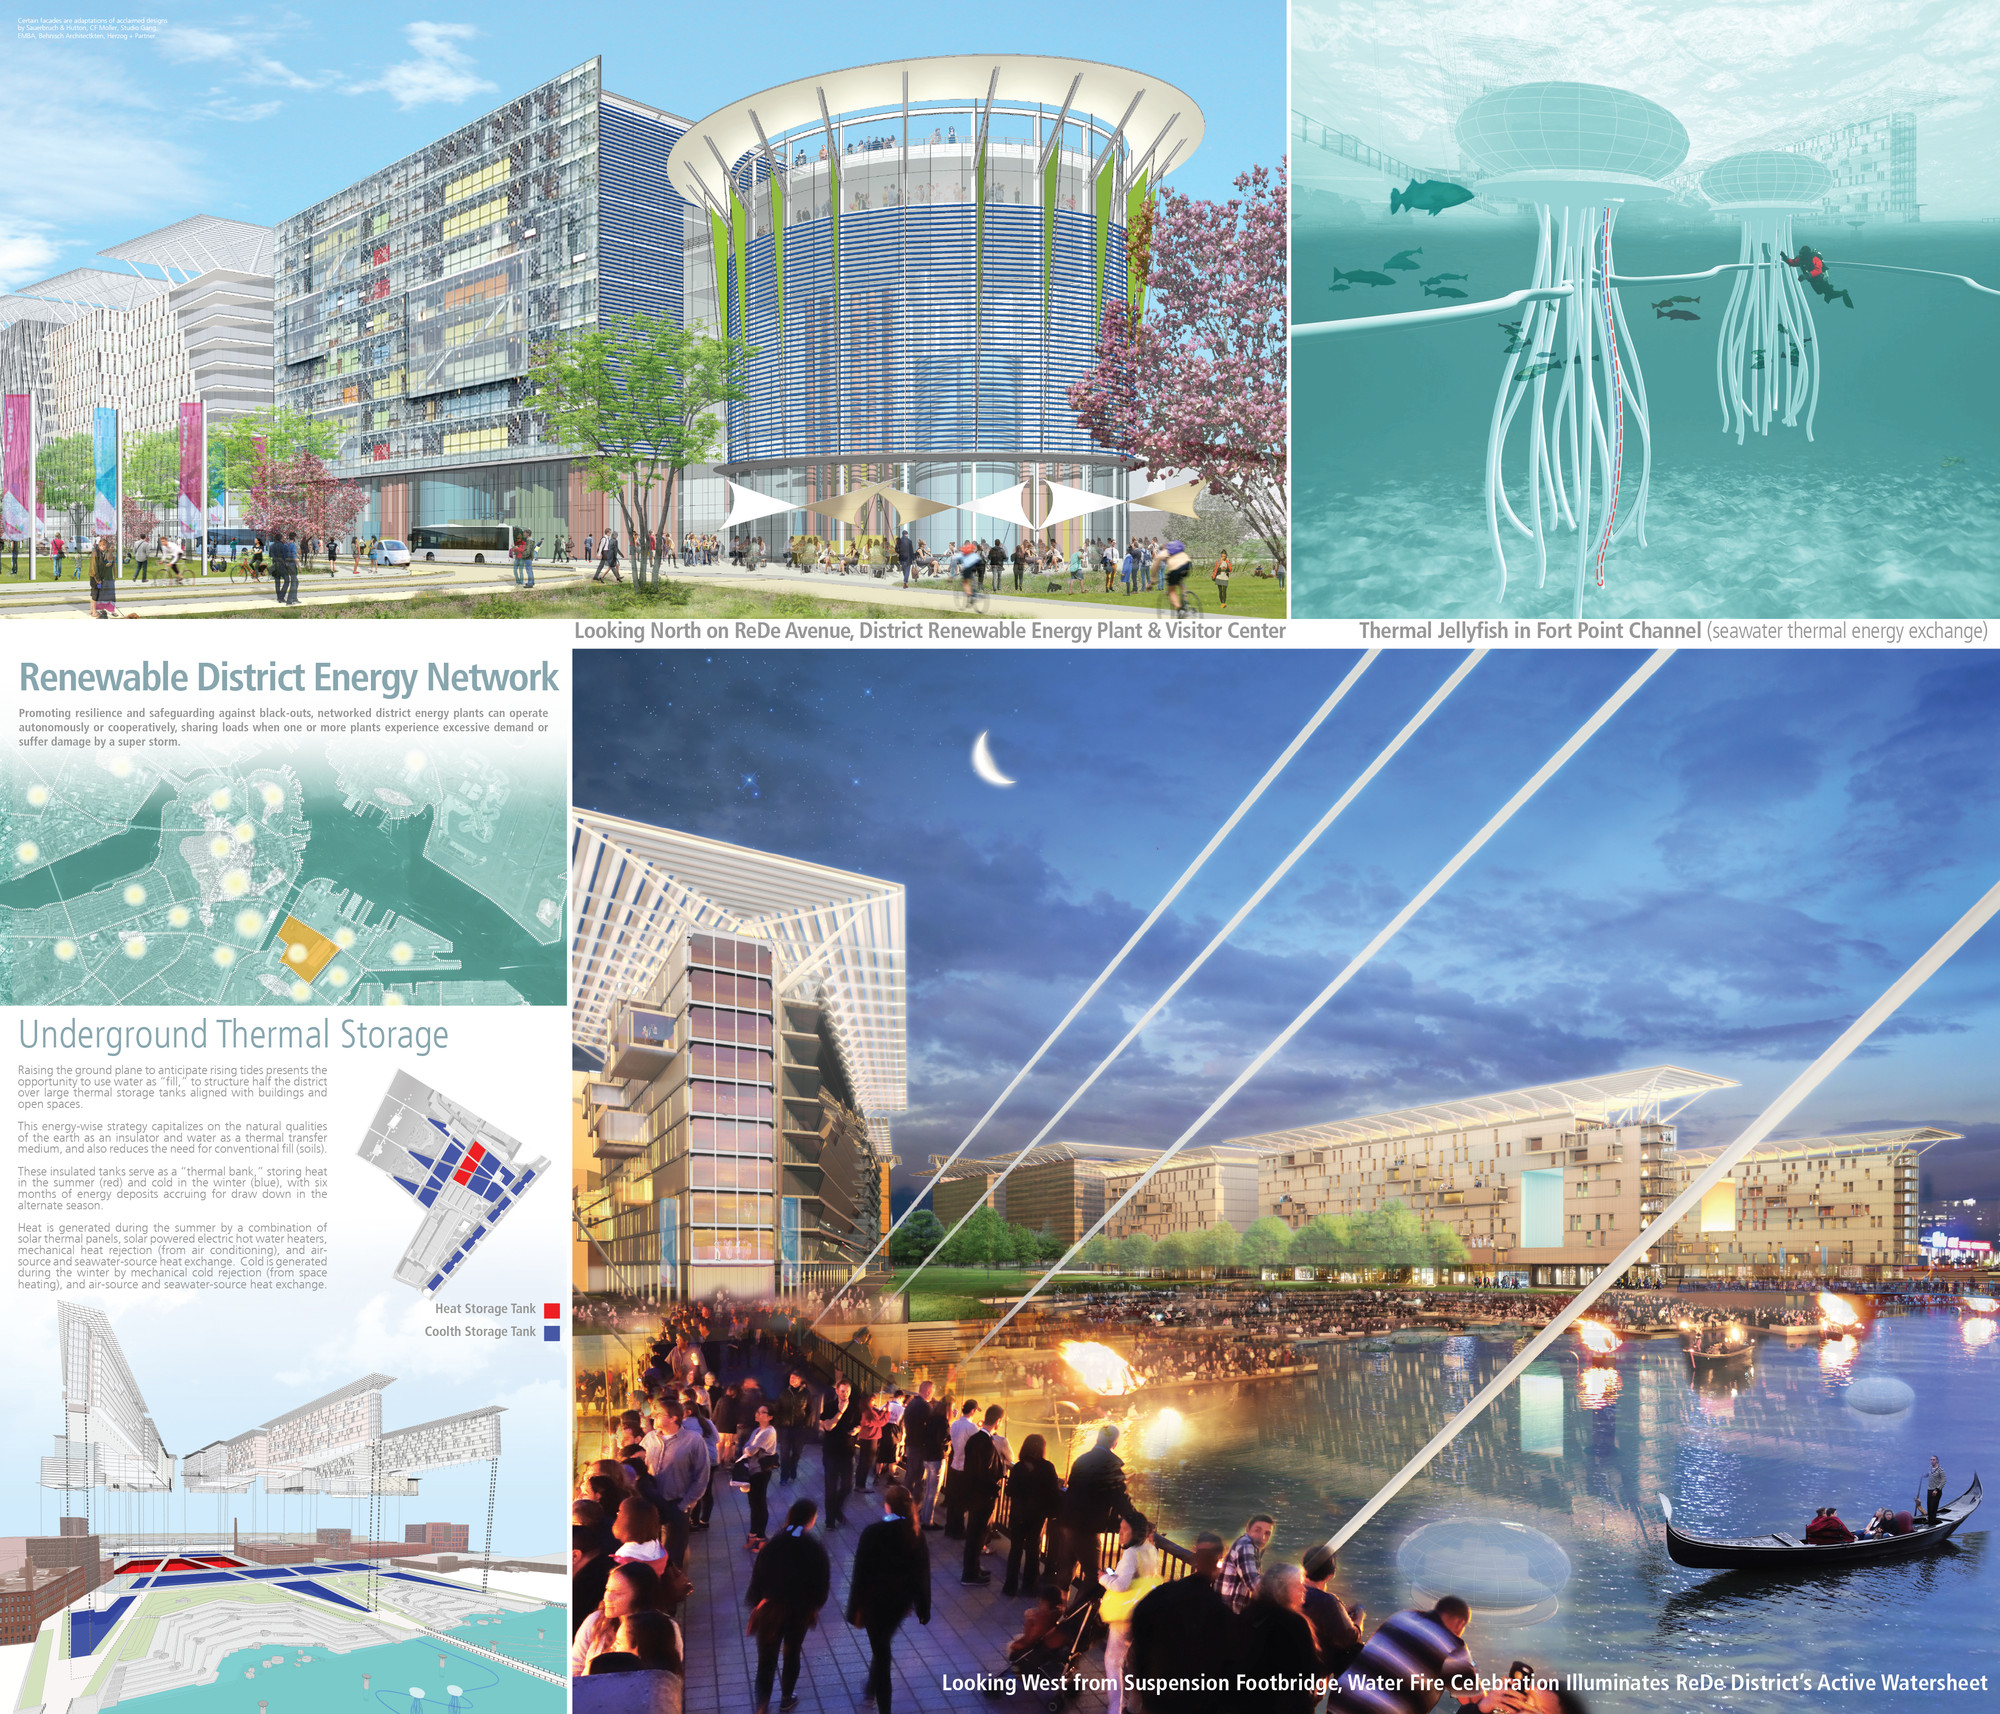 Winners of Boston Living with Water Competition Announced, ReDeBOSTON 2100; Architerra. Image Courtesy of Boston Living with Water